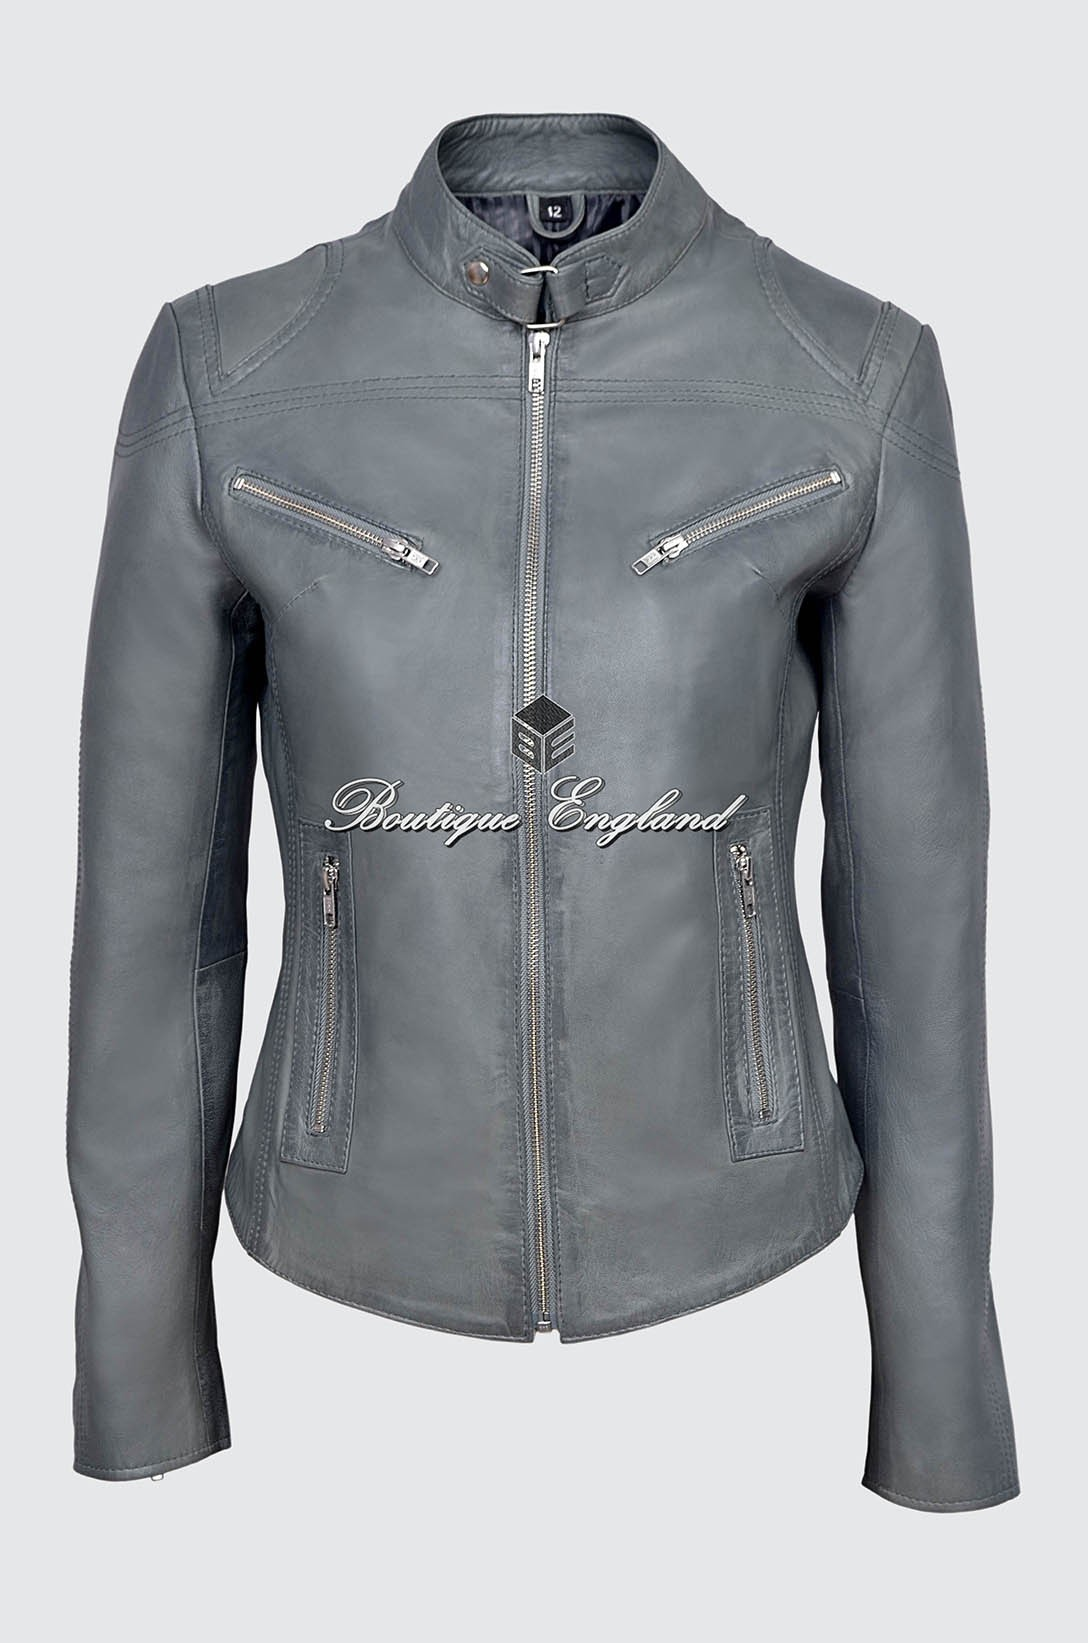 New 'SPEED' Ladies Grey Retro Biker Style Fitted Motorcycle Leather Jacket SR-01